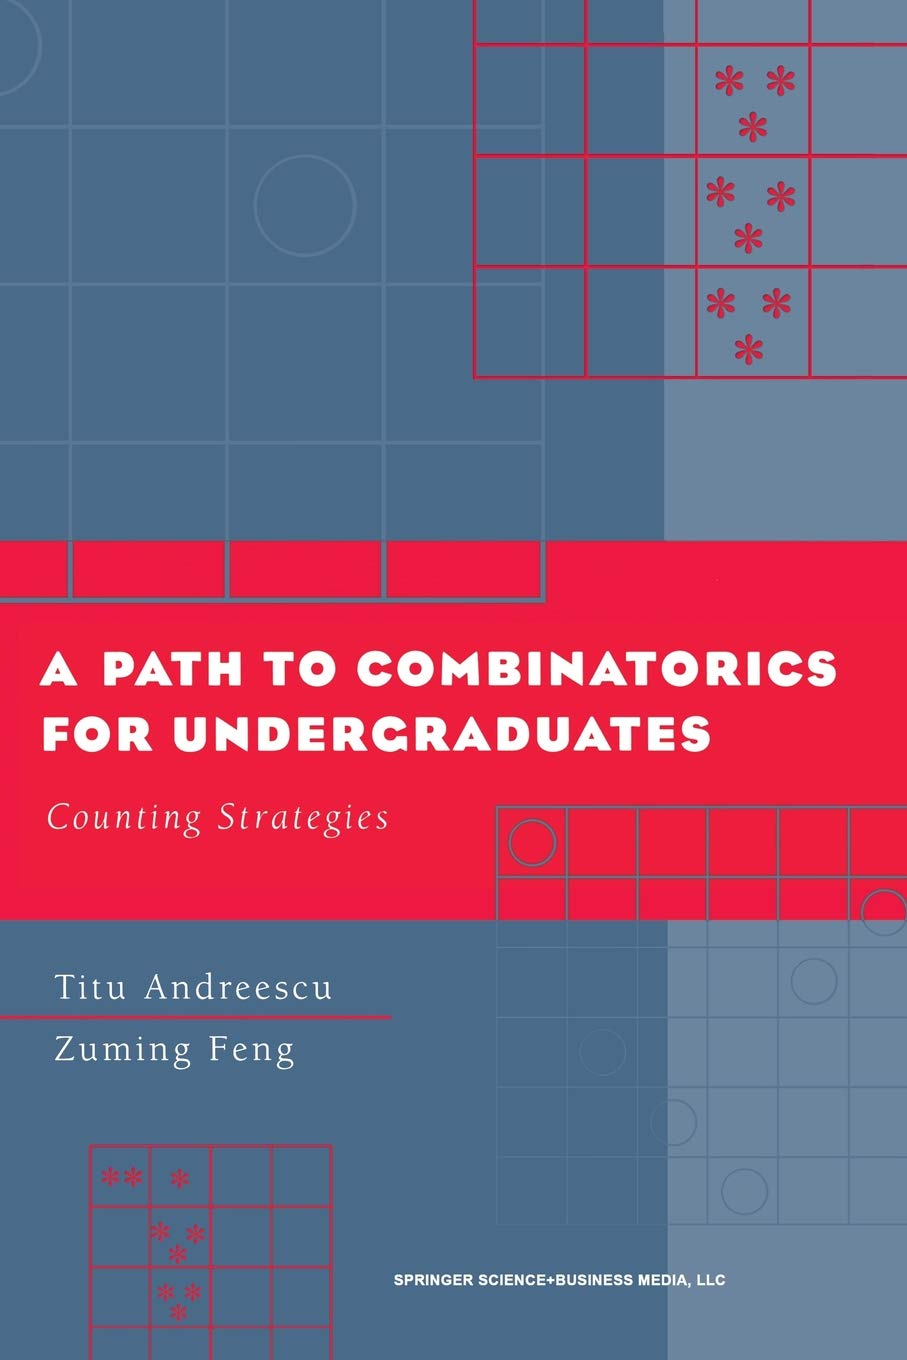 a path to combinatorics